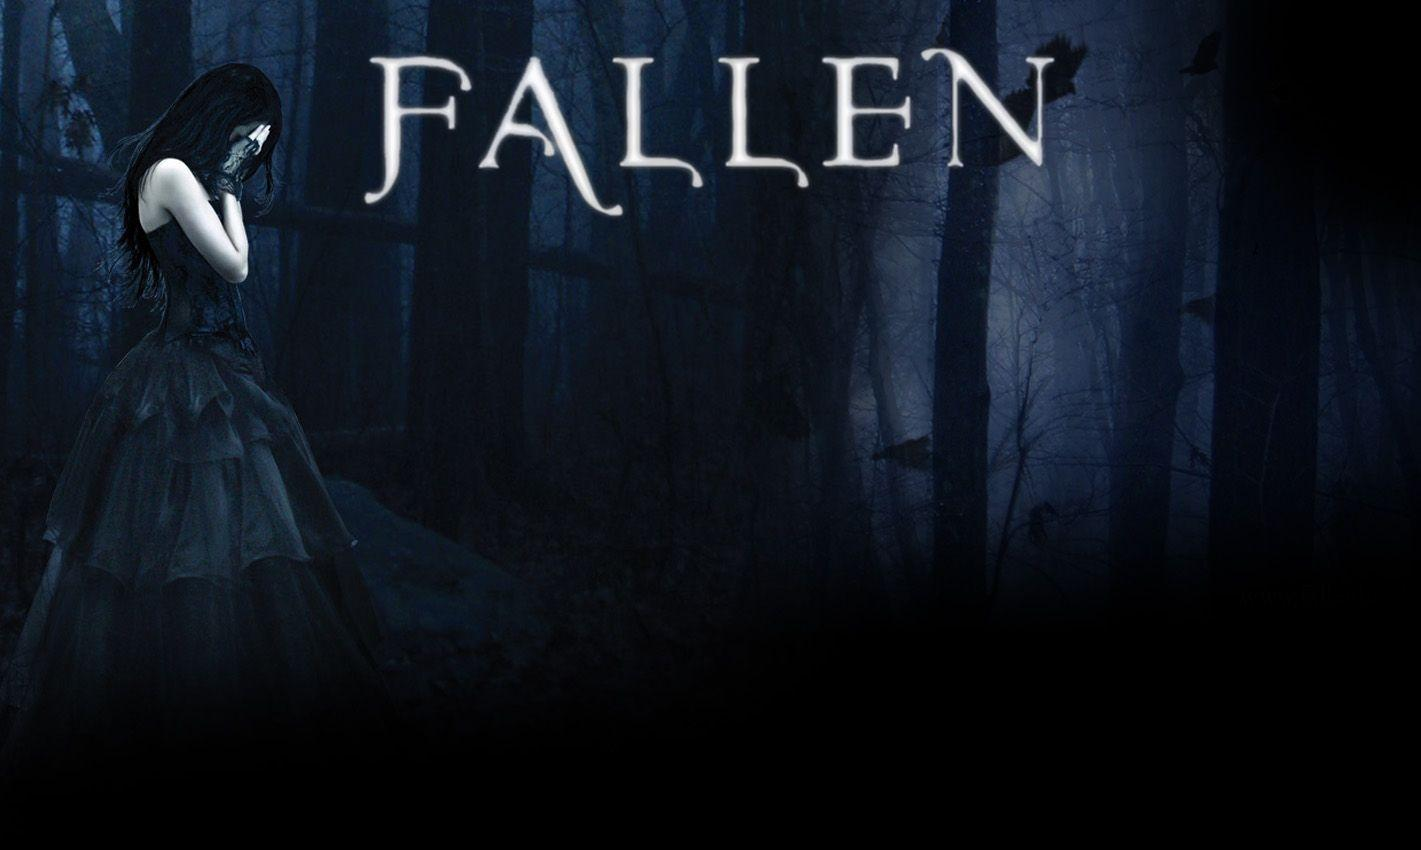 Fallen Wallpapers 1421x850